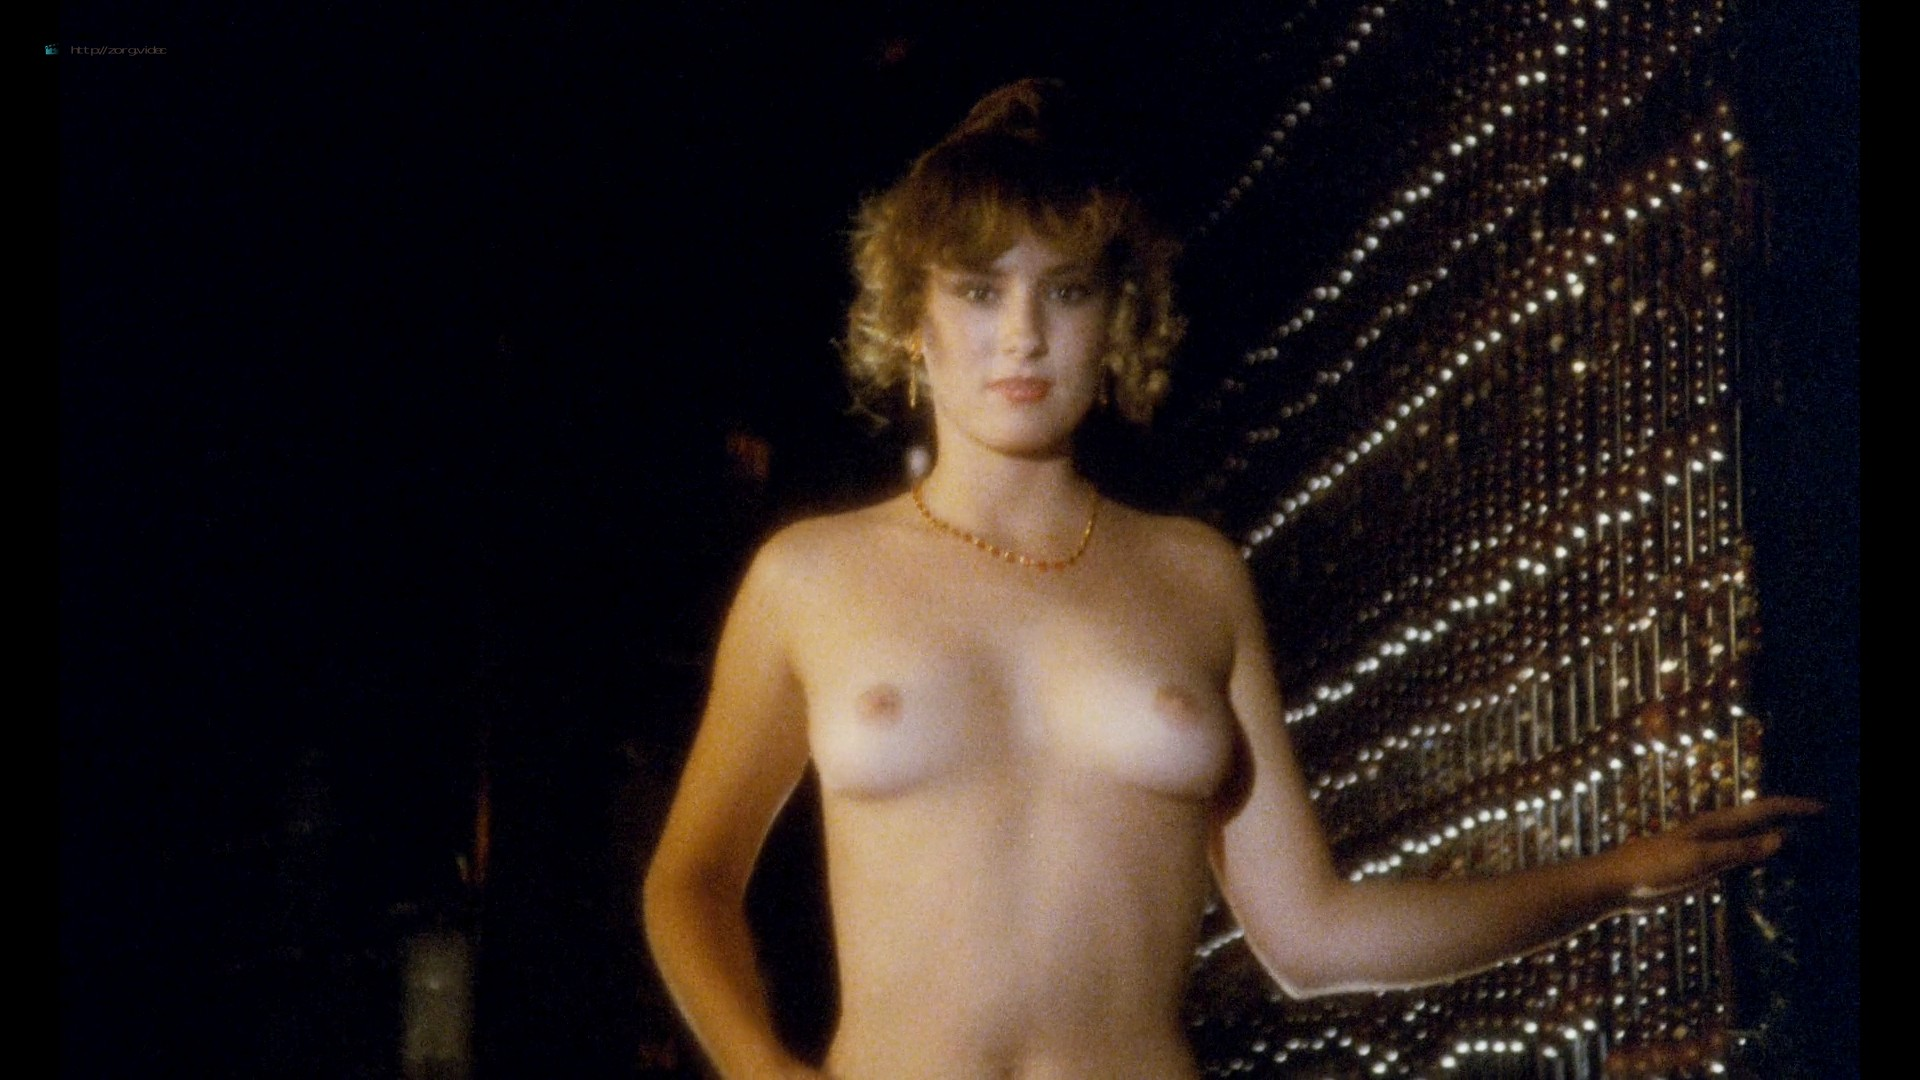 Josephine Jacqueline Jones nude full frontal Florence Guérin and others nude sex too - Black Venus (1983) HD 1080p Web (6)